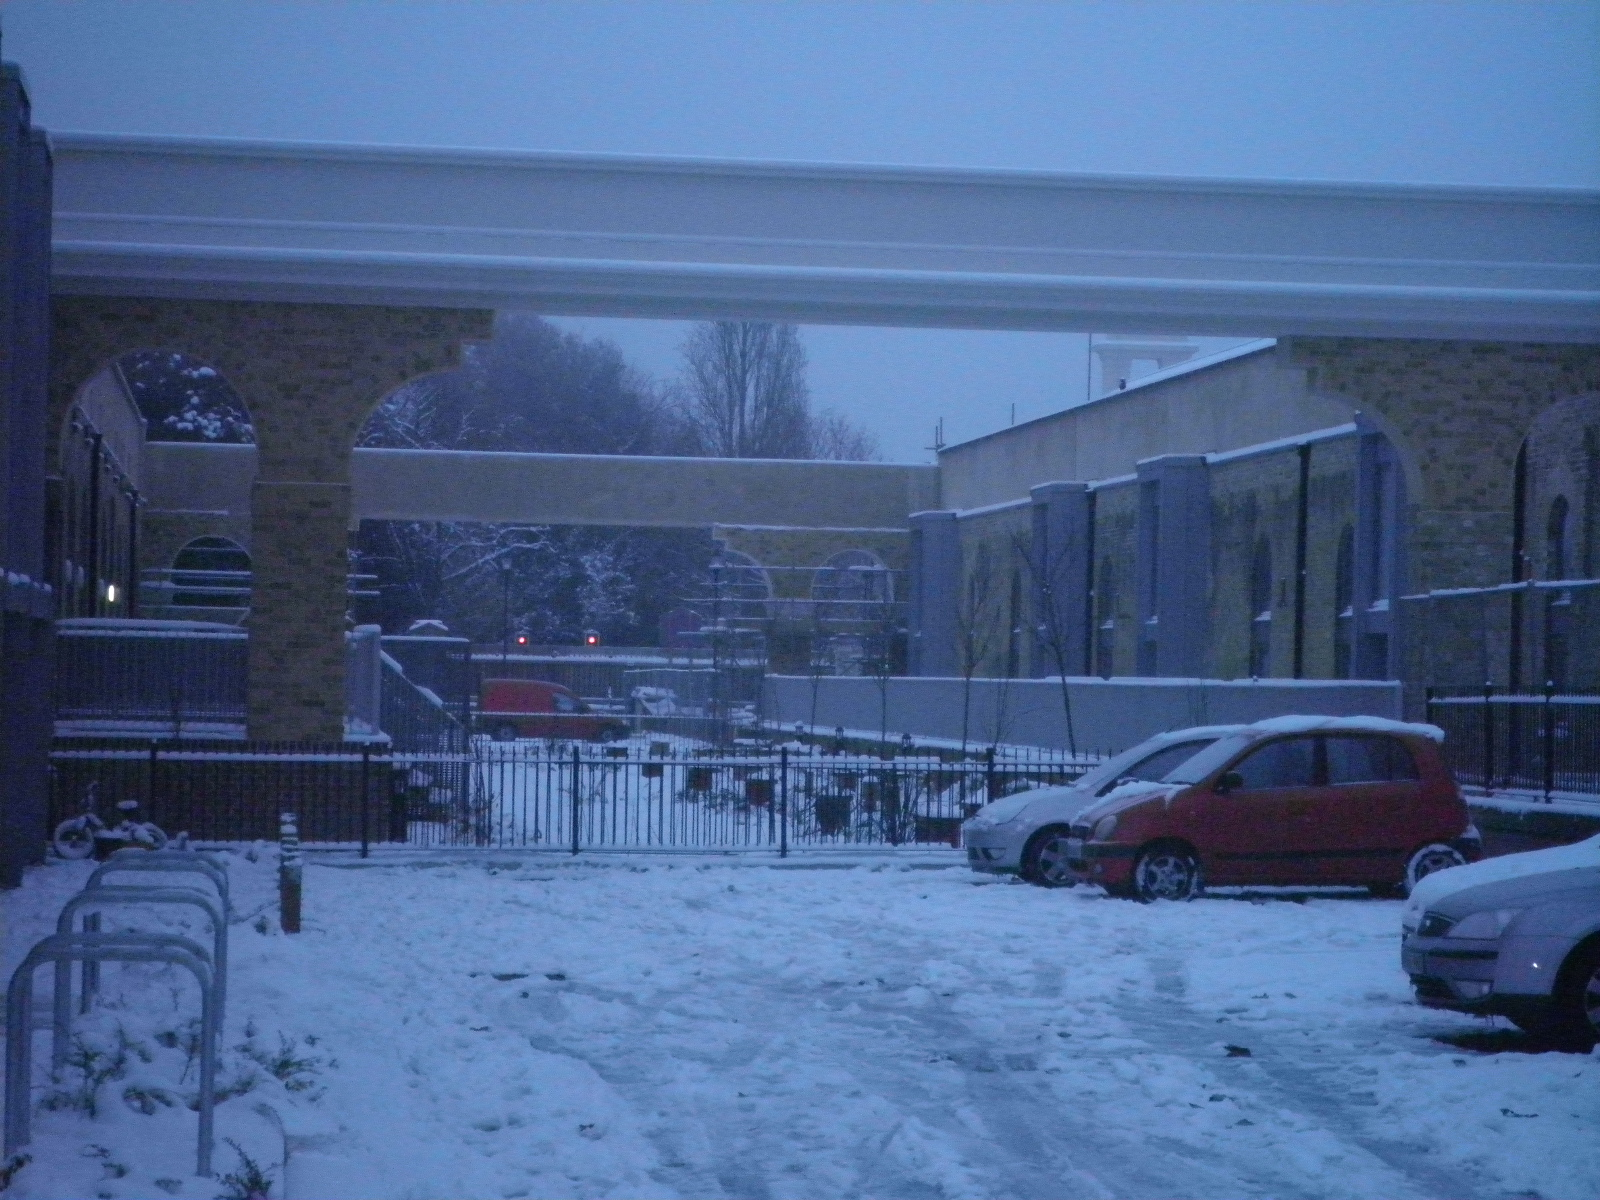 Gosport station in the snow